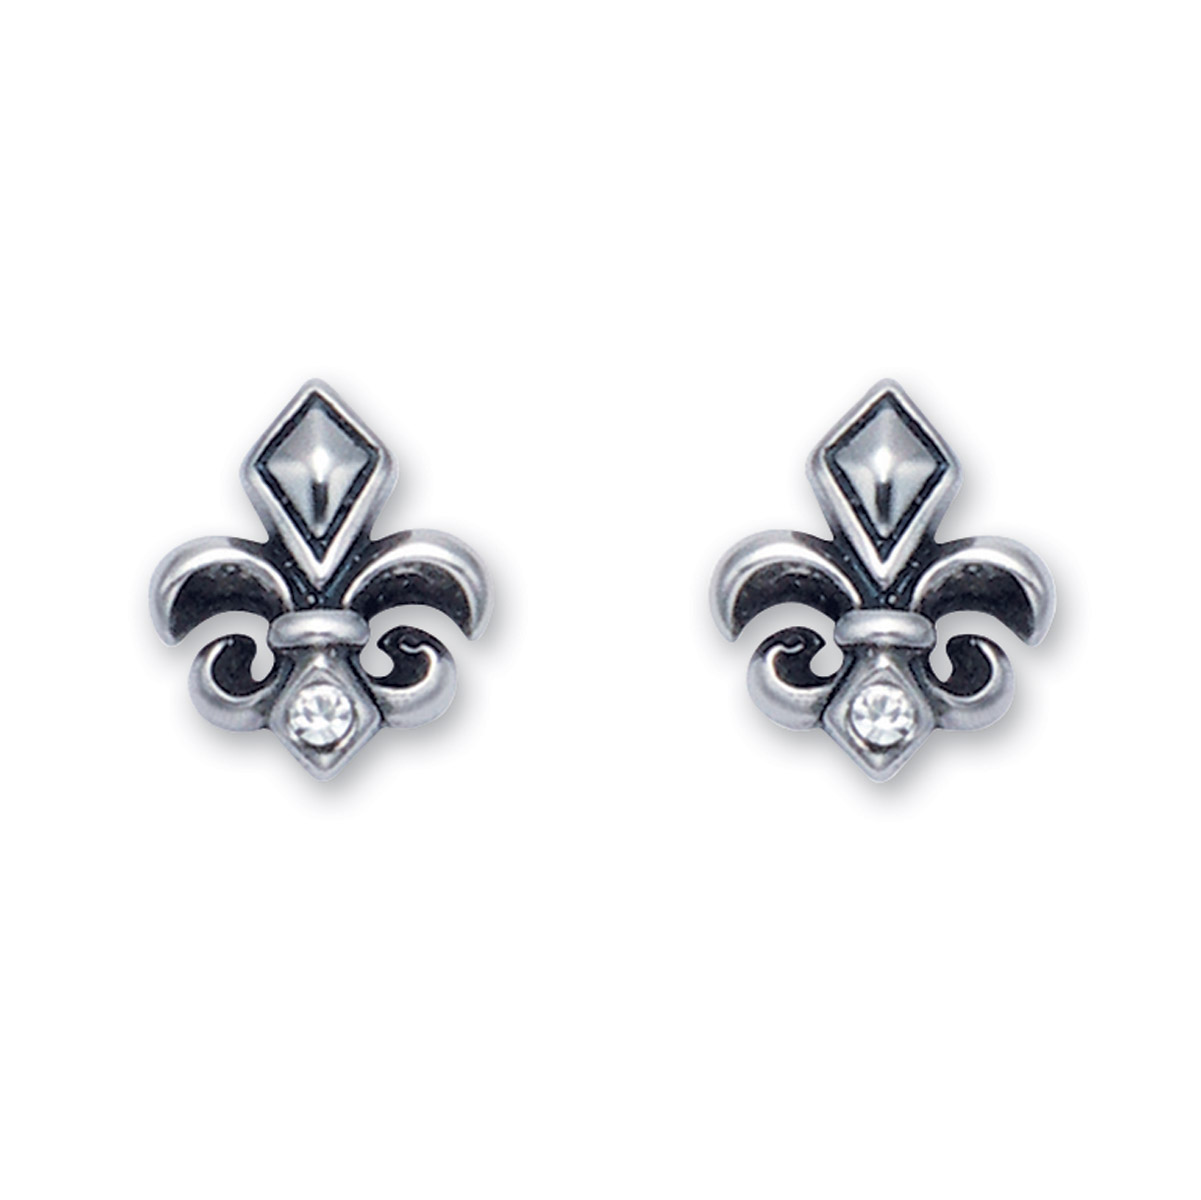 Wildthings Stainless Steel Stud Earrings Fleur De Lis